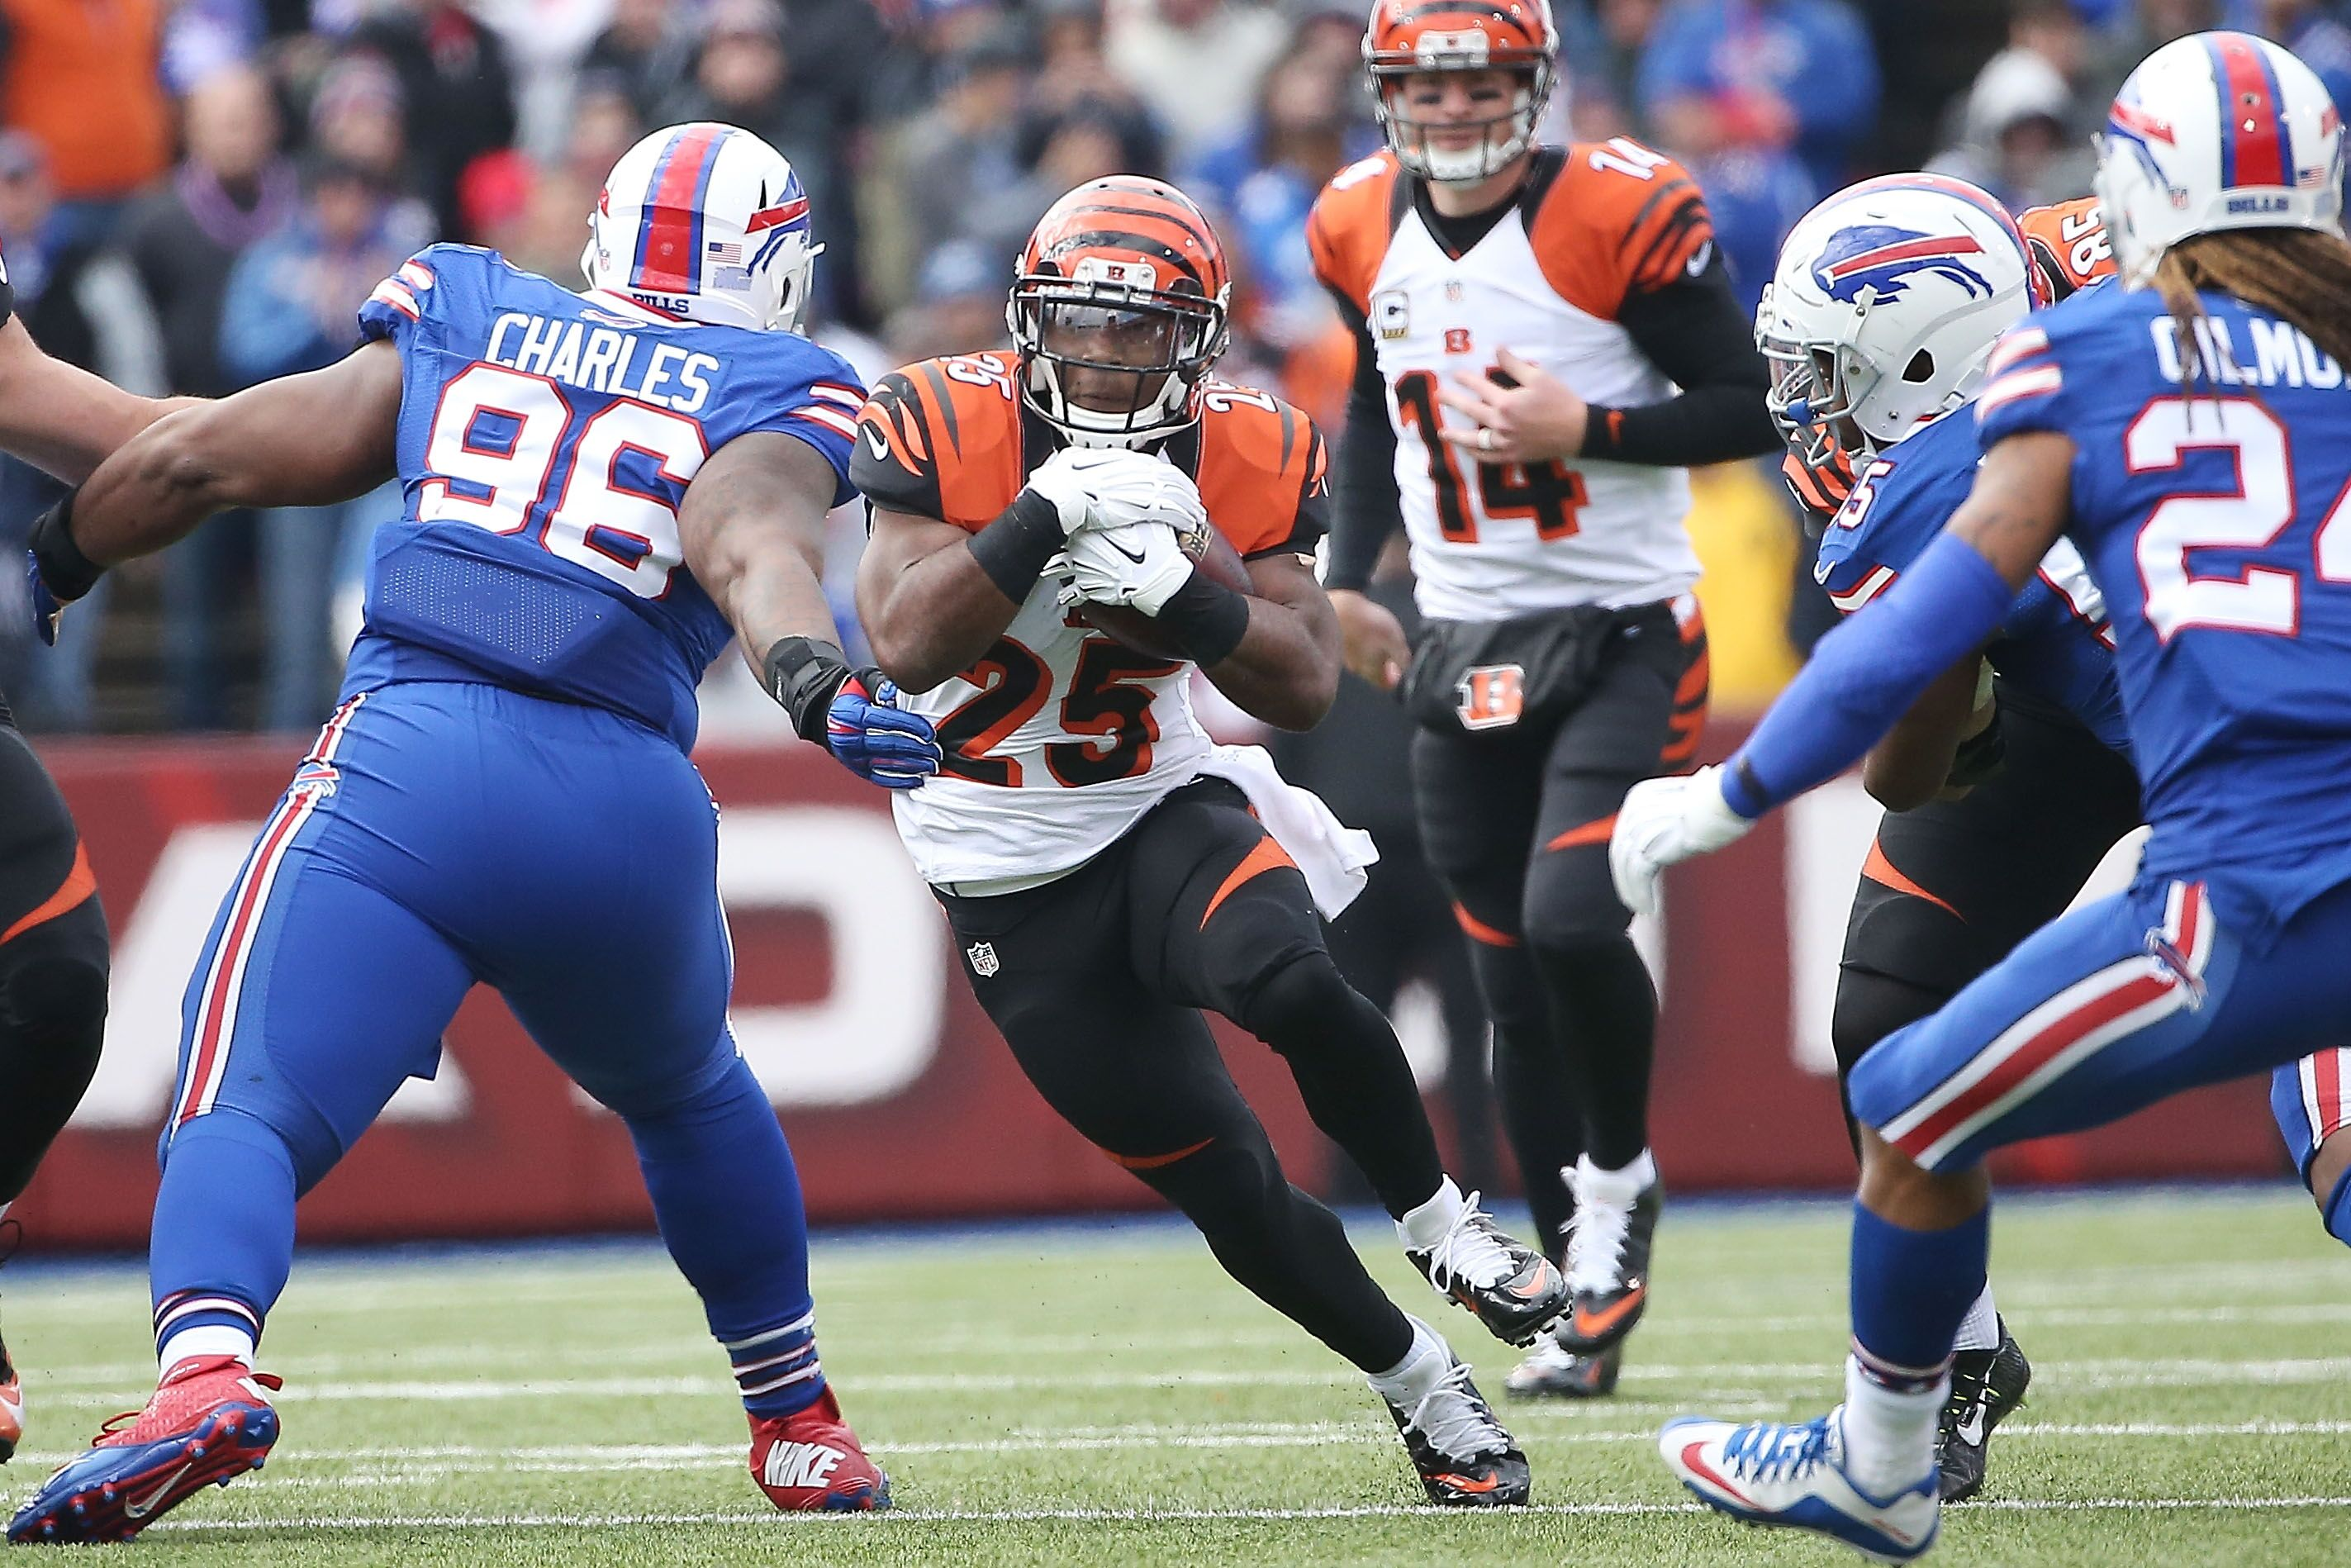 493254758-cincinnati-bengals-v-buffalo-bills.jpg